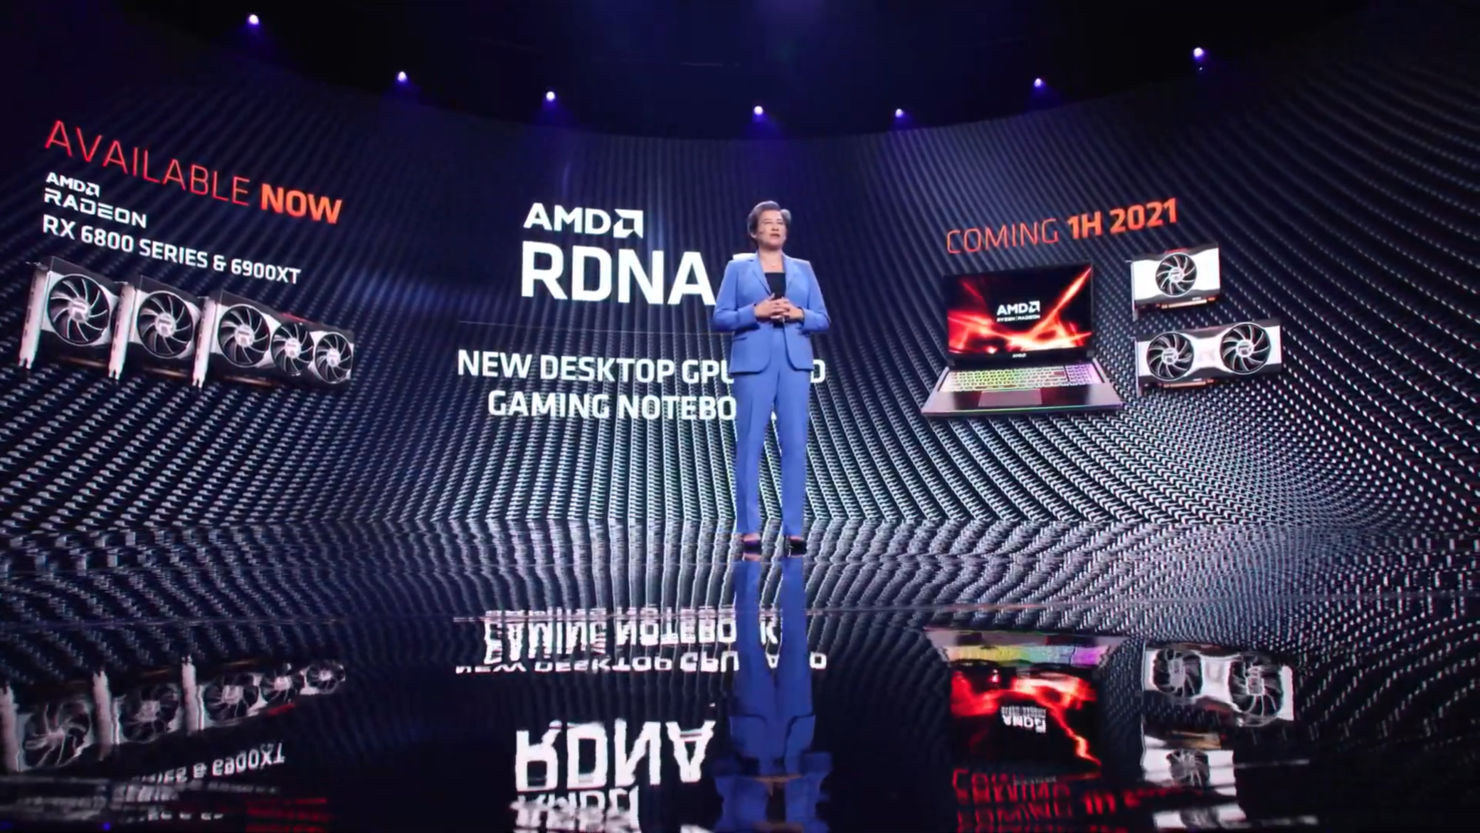 amd-radeon-rx-6500-series-gpus-with-navi-23-detailed-–-expected-to-feature-up-to-2048-cores,-8-gb-memory-&-tackle-nvidia-rtx-3060-at-1080p